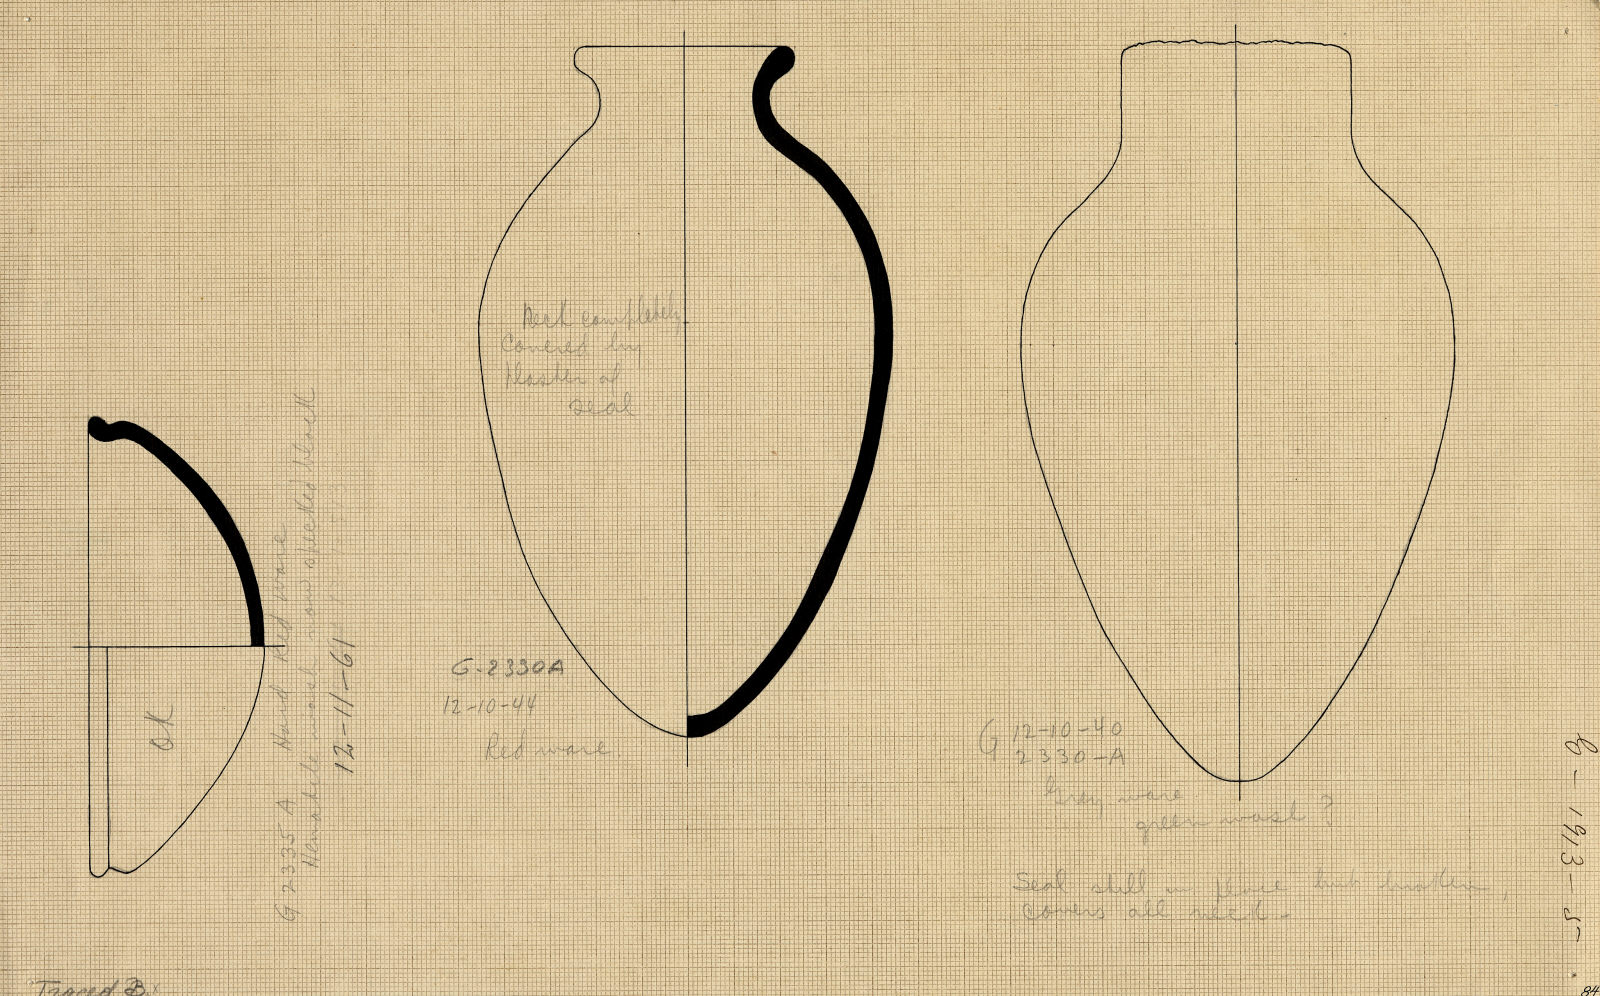 Drawings: Pottery from G 2352, Shaft A (mislabeled G 2335 A) and G 2330 (= G 5380), Shaft A